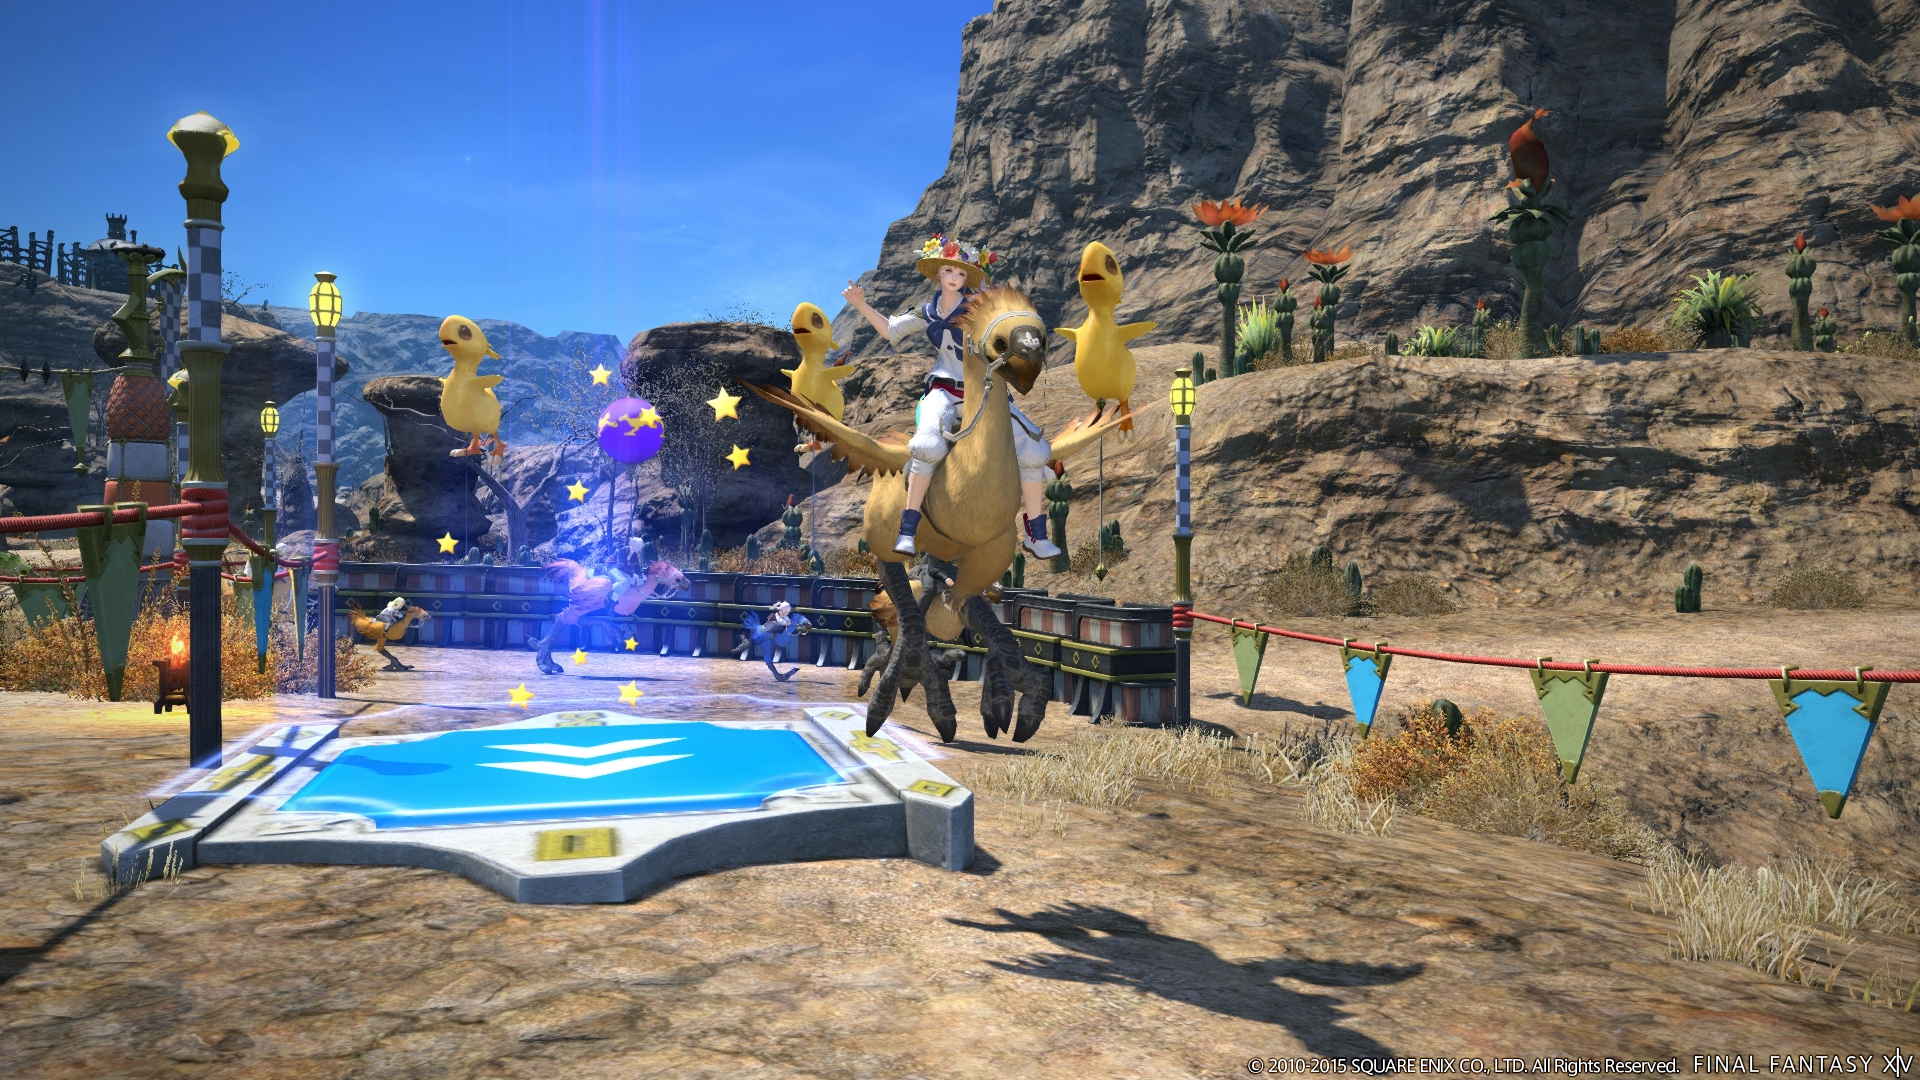 New Final Fantasy XIV update introduces the Manderville Gold Saucer